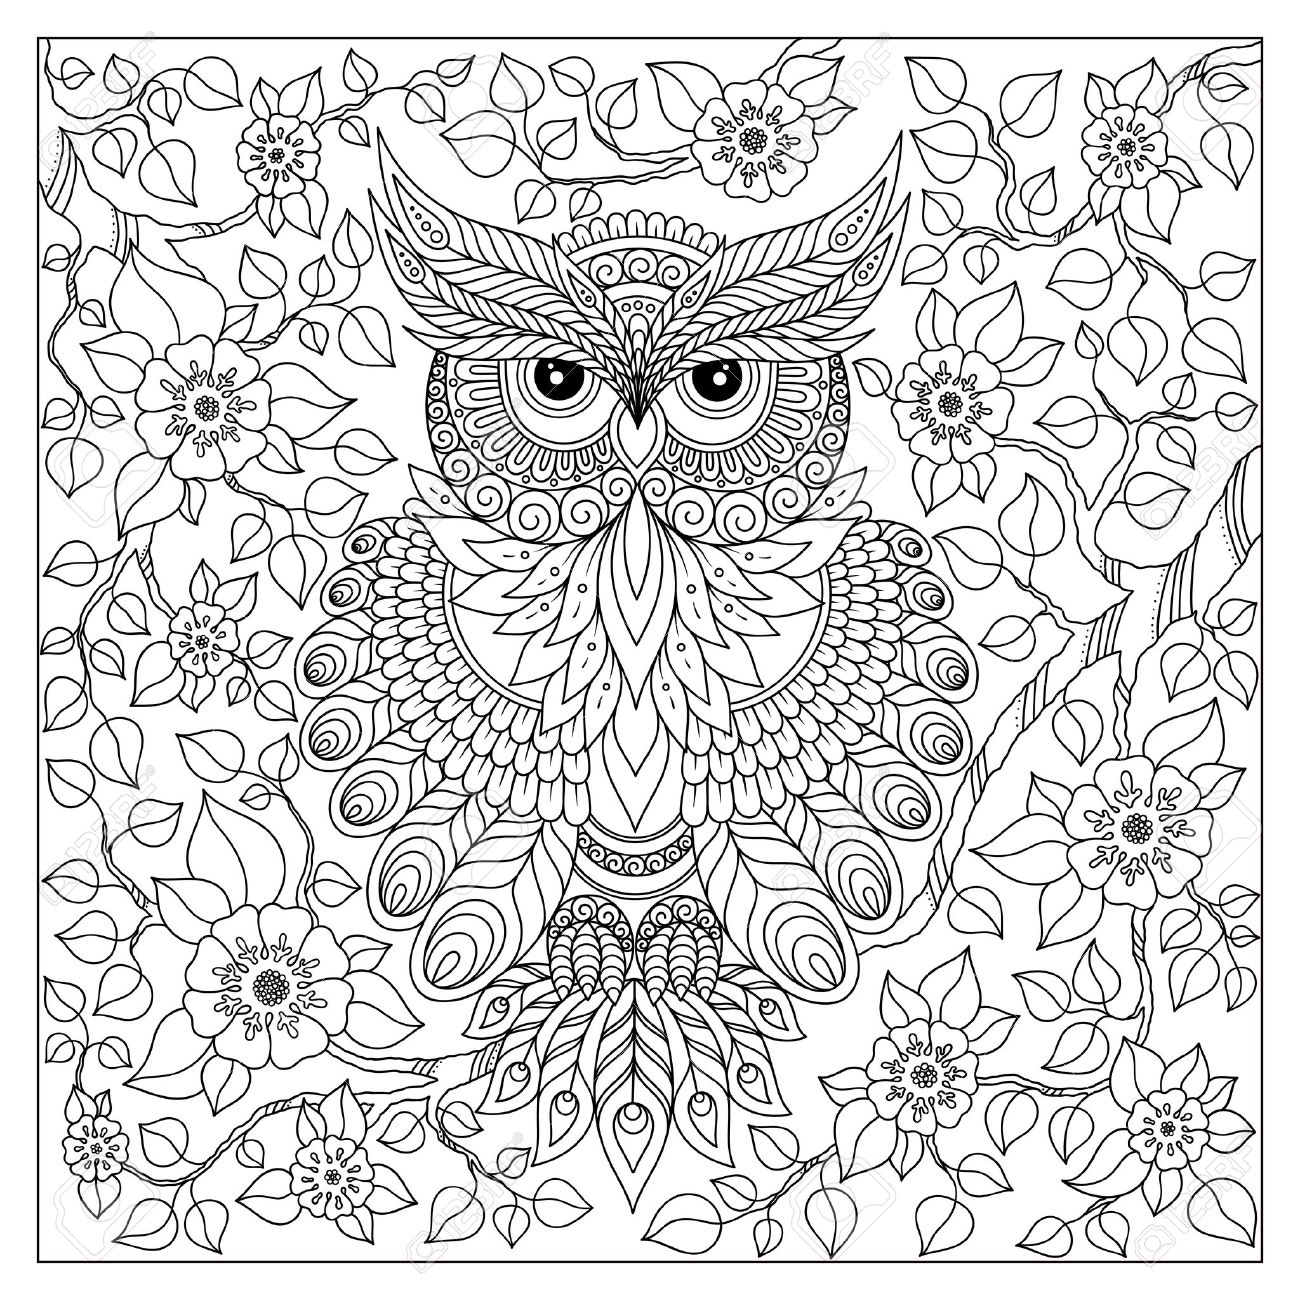 Coloring book for adult and older children. Coloring page with..